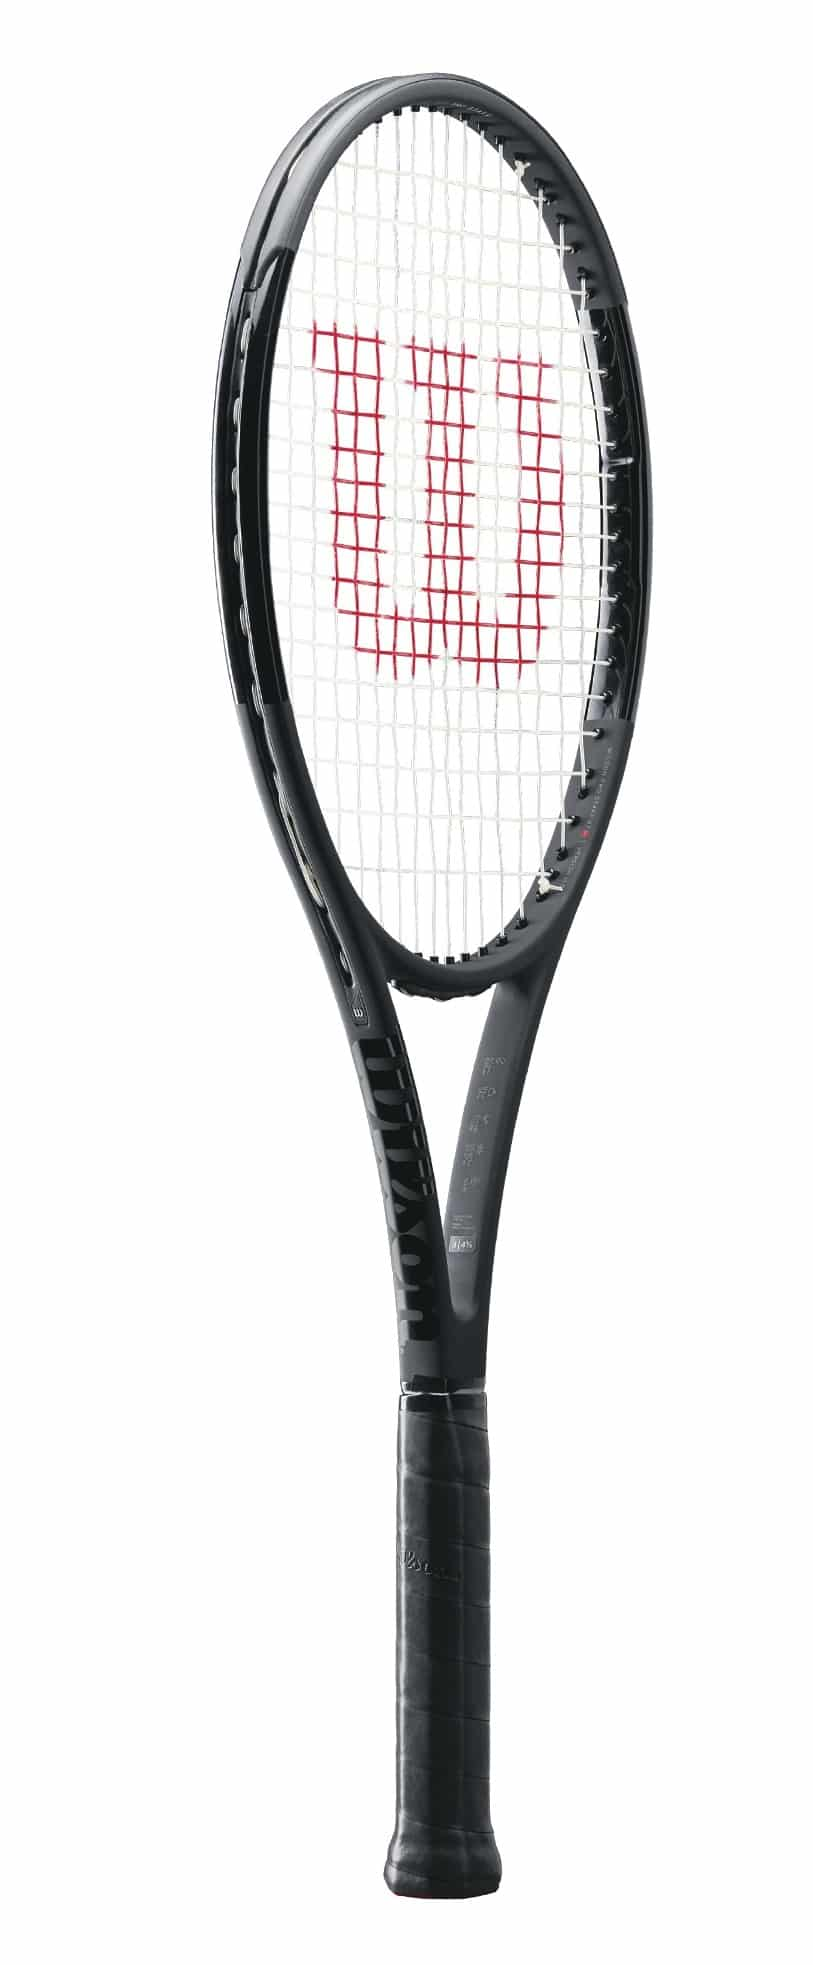 45d66cd1a Introducing Wilson ProStaff Countervail Tennis Racquets!